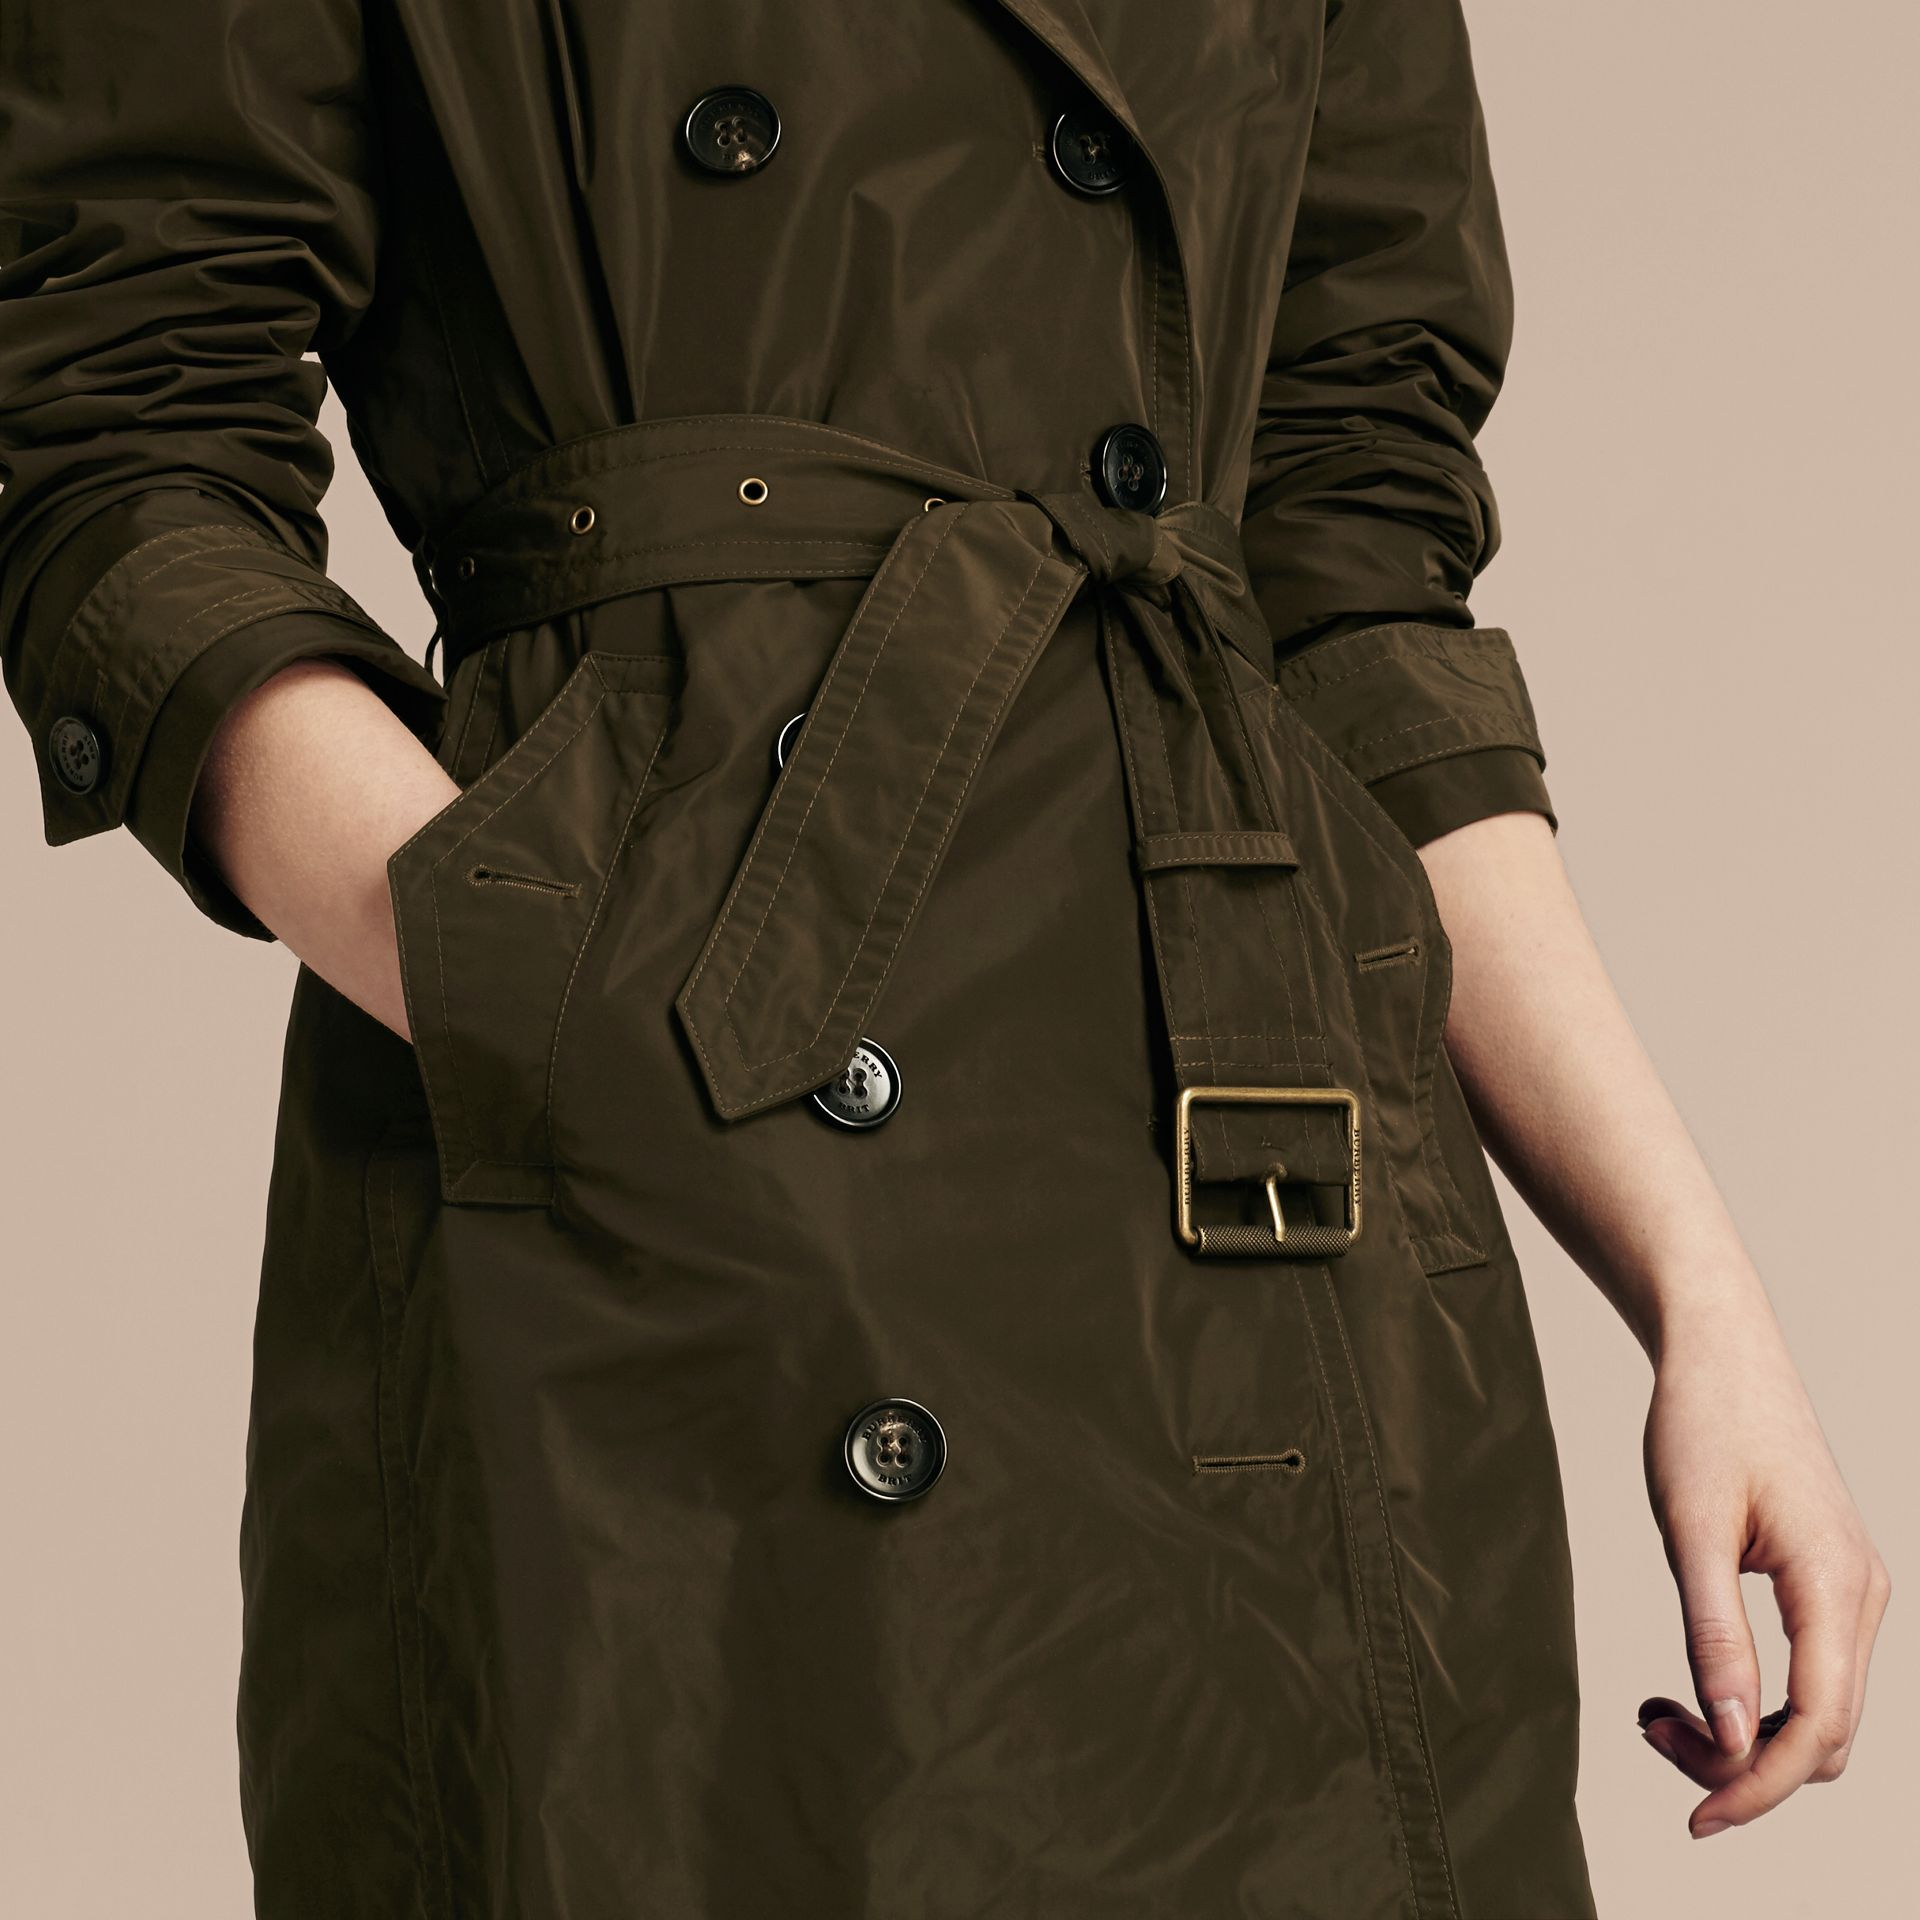 Taffeta Trench Coat with Detachable Hood in Dark Olive - Women | Burberry - gallery image 5